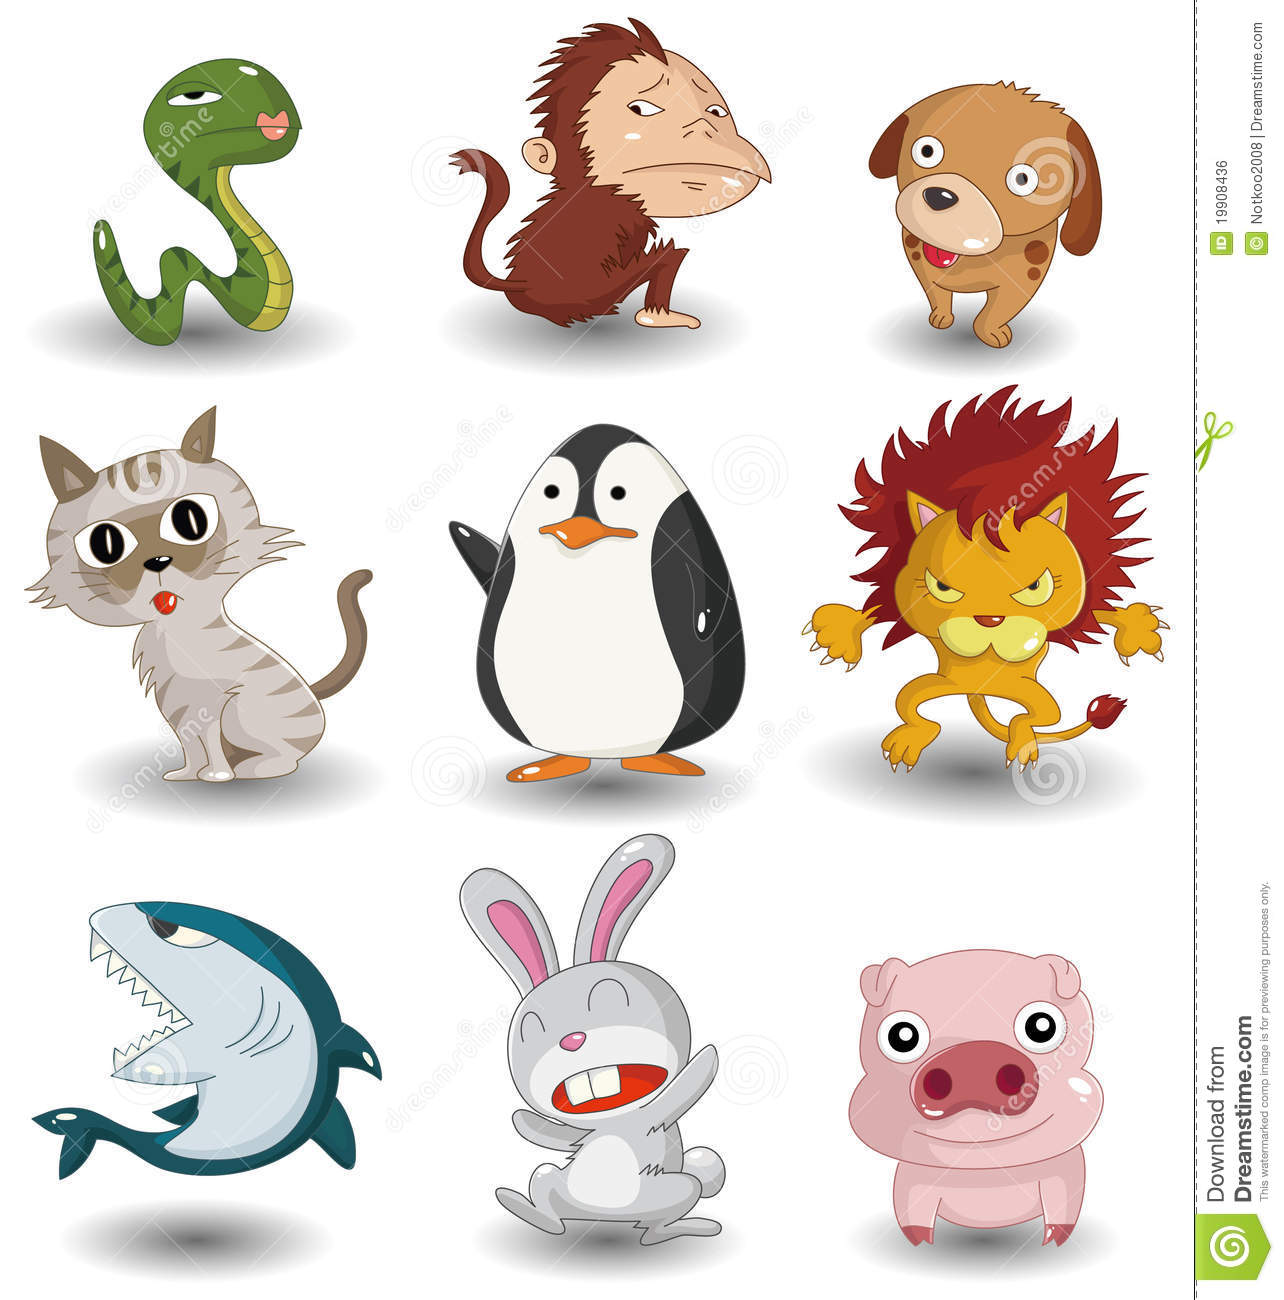 Cartoon Animal Icon Set Royalty Free Stock Image - Image: 19908436